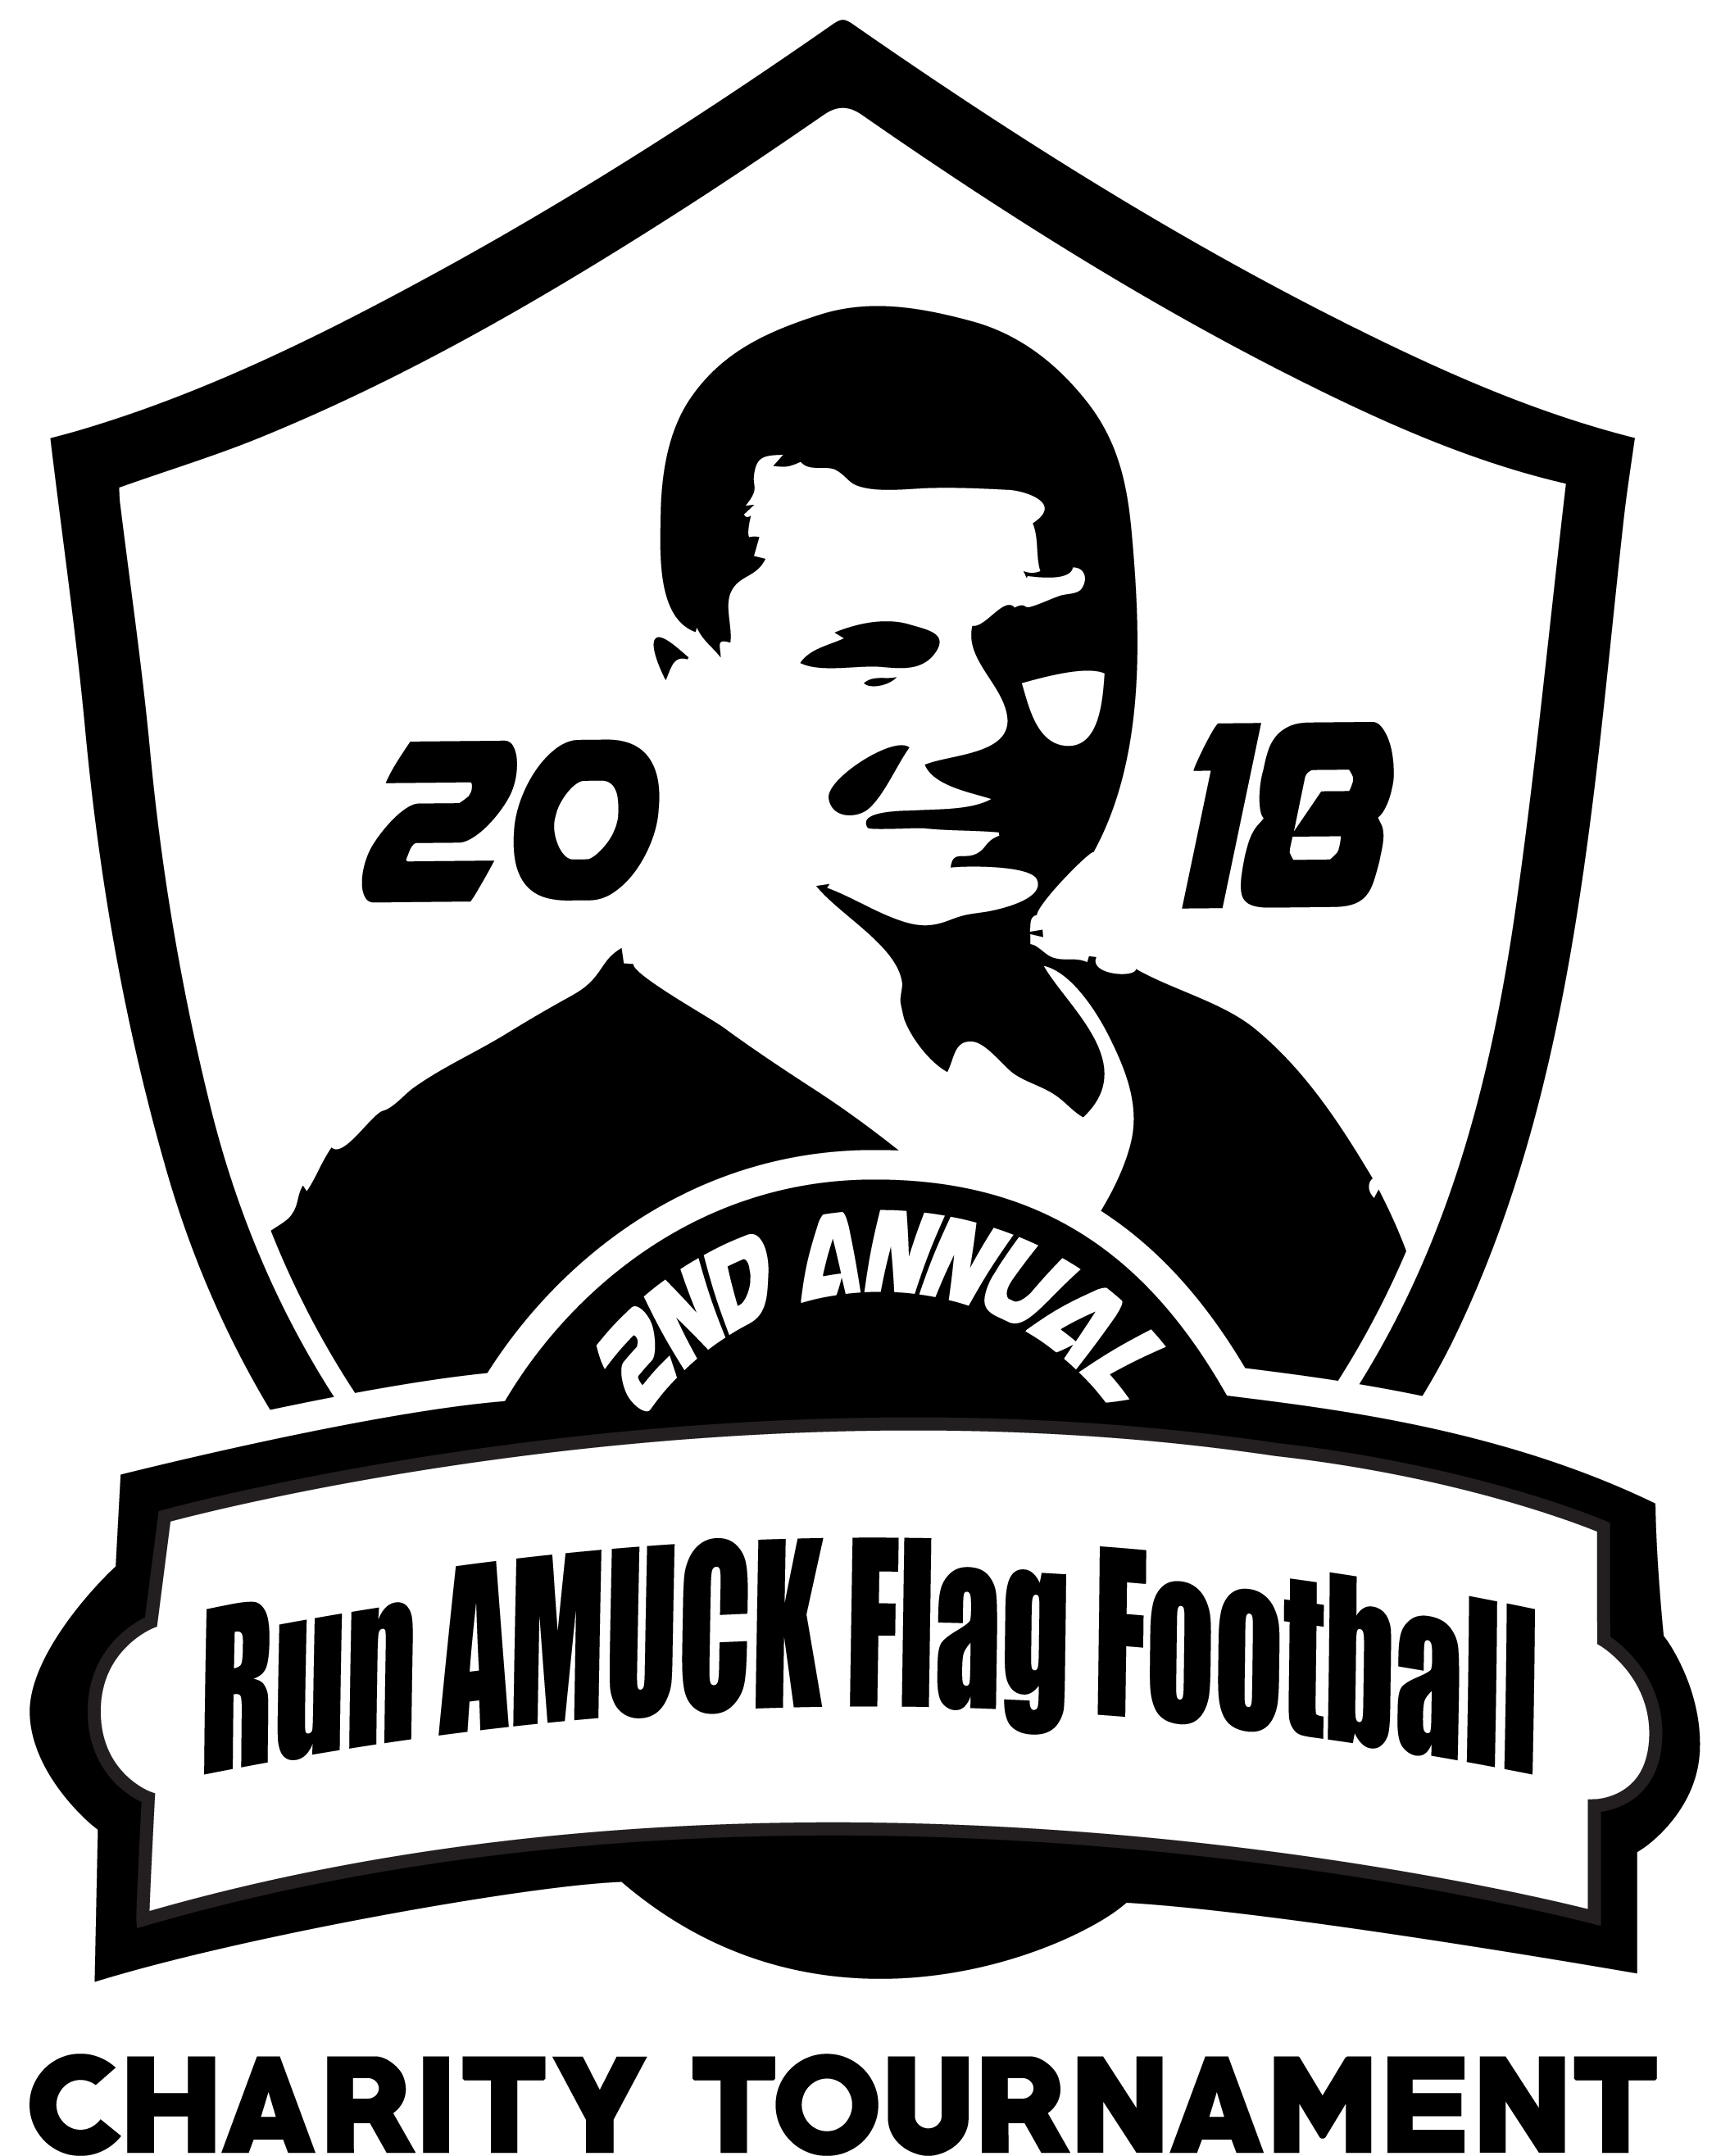 Referee football clipart clipart download 2ND ANNUAL RUN AMUCK FLAG FOOTBALL TOURNAMENT clipart download